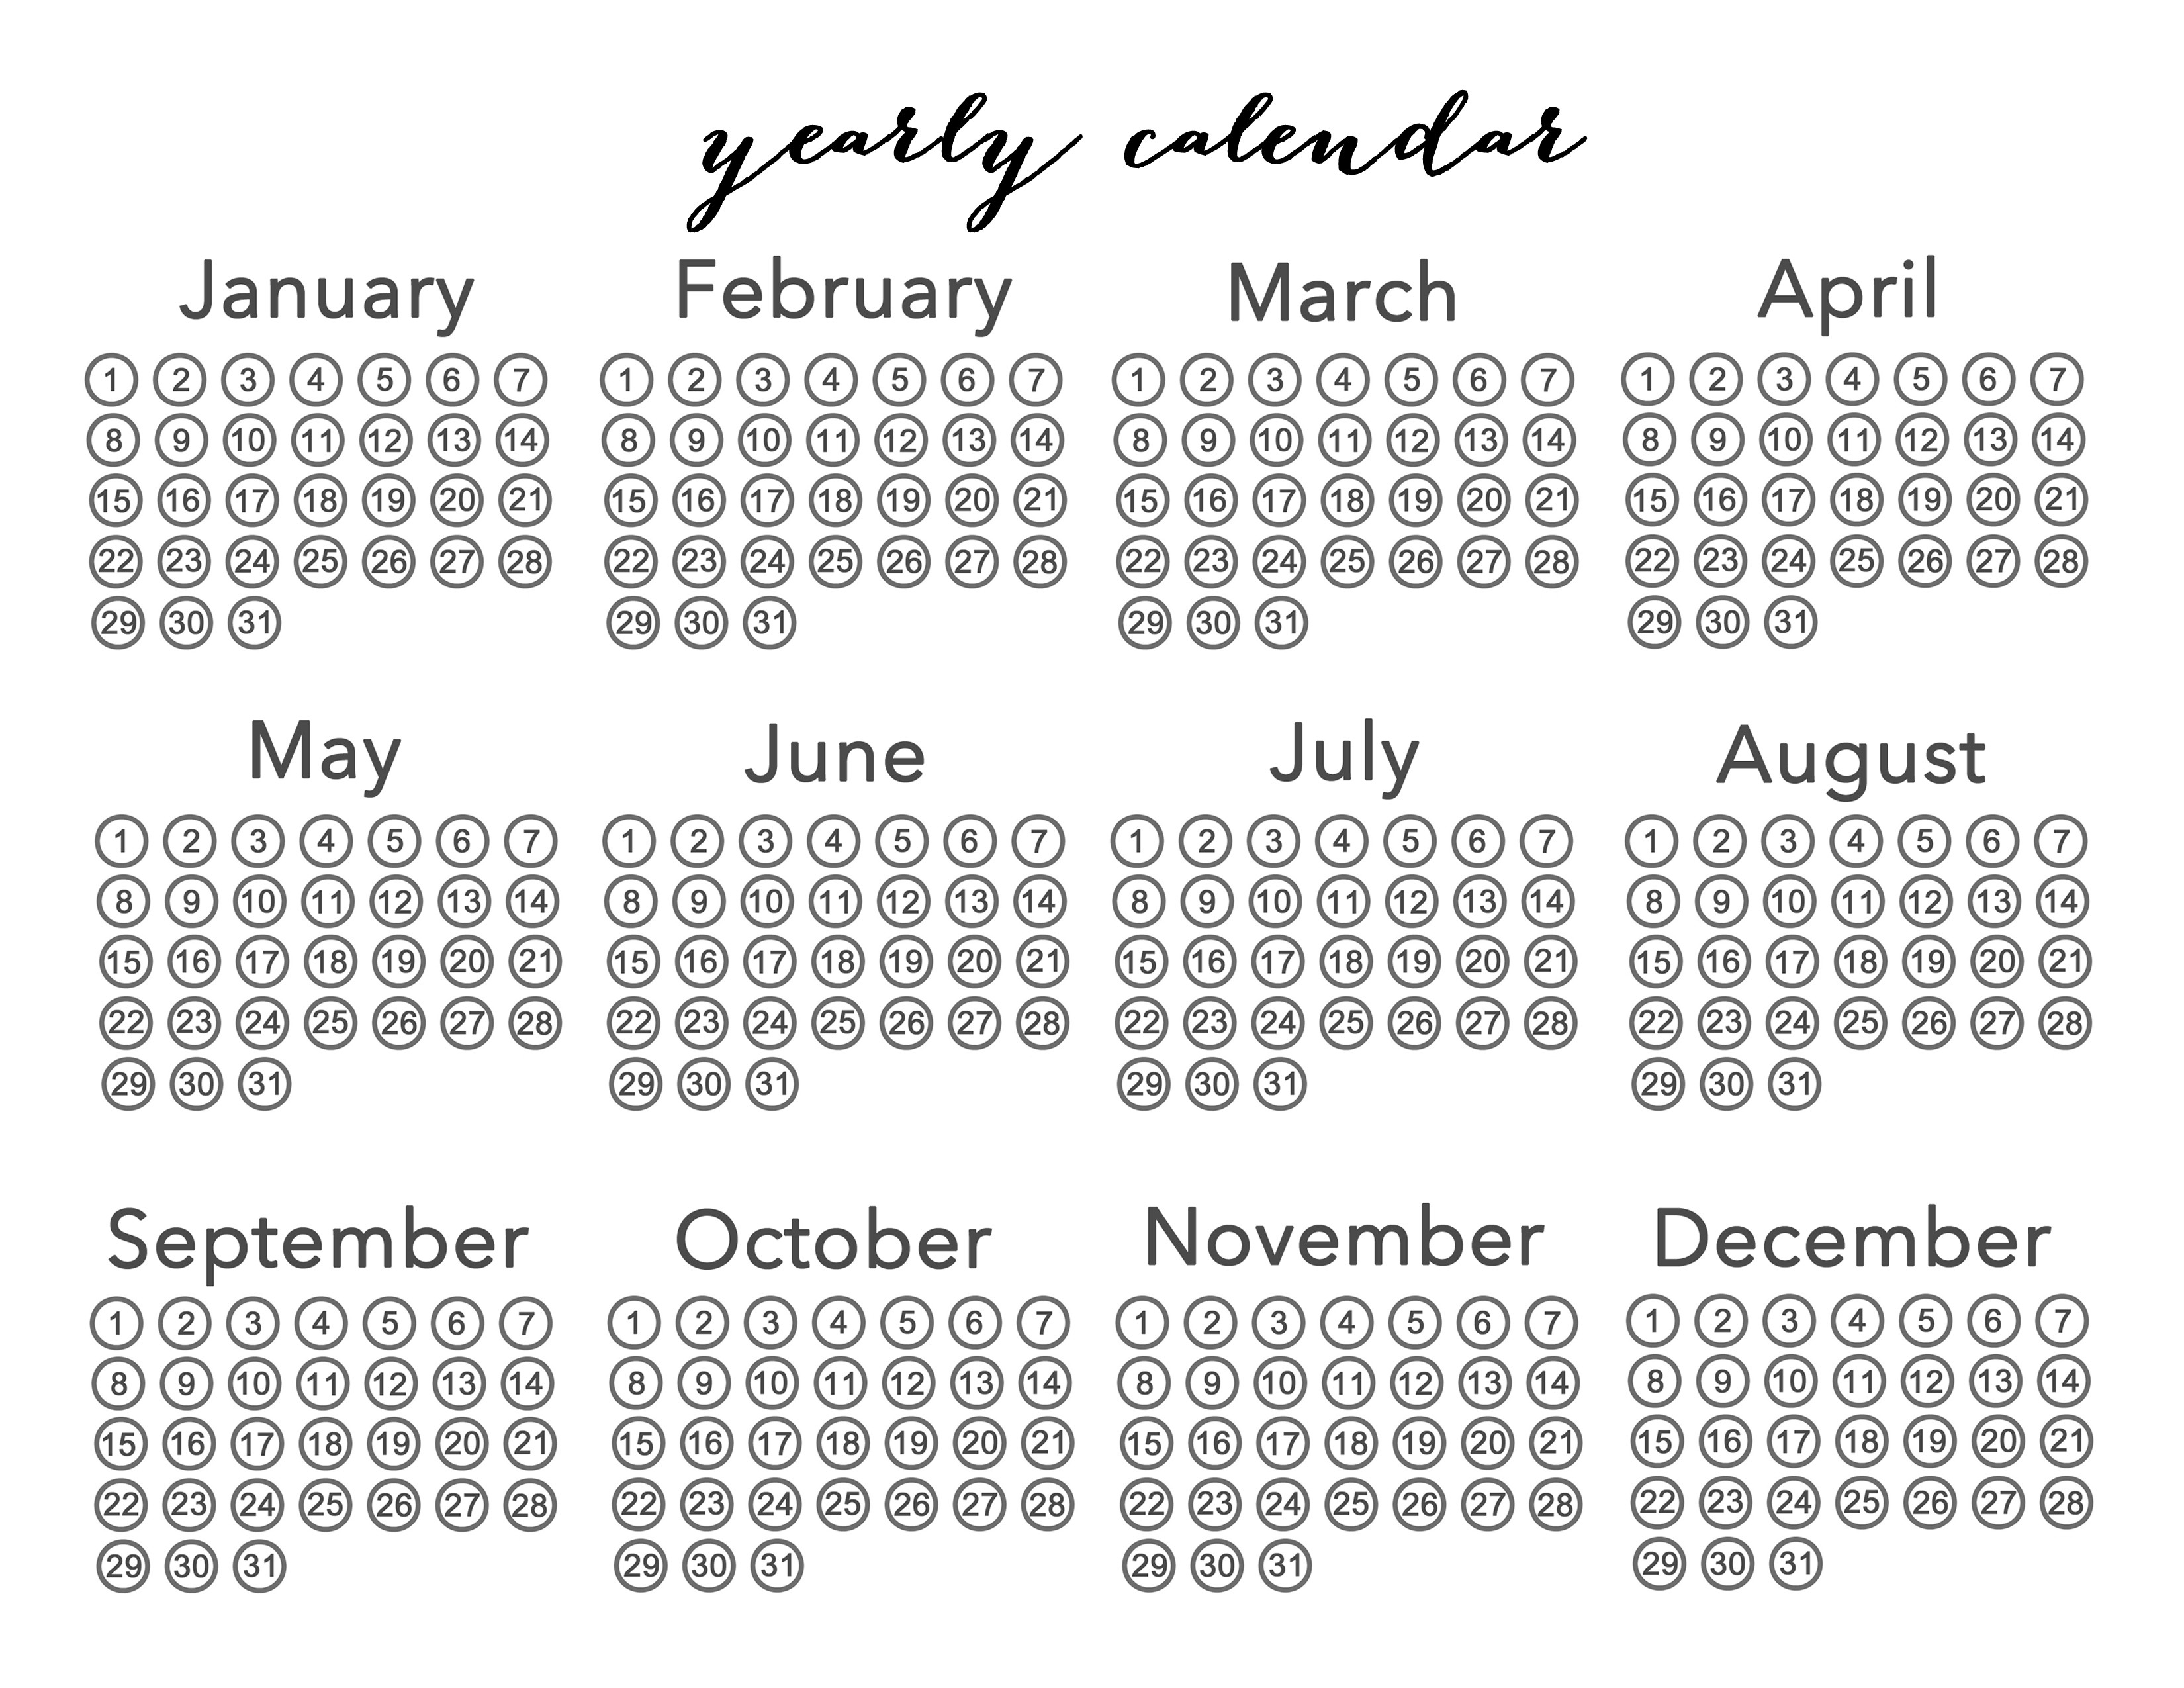 March Calendar Print Out Más Reciente New Year S Eve Resolutions Printable Calendars the Idea Room Of March Calendar Print Out Recientes Monthly Calendar 2015 Template Printable 2016 Calendar Templates